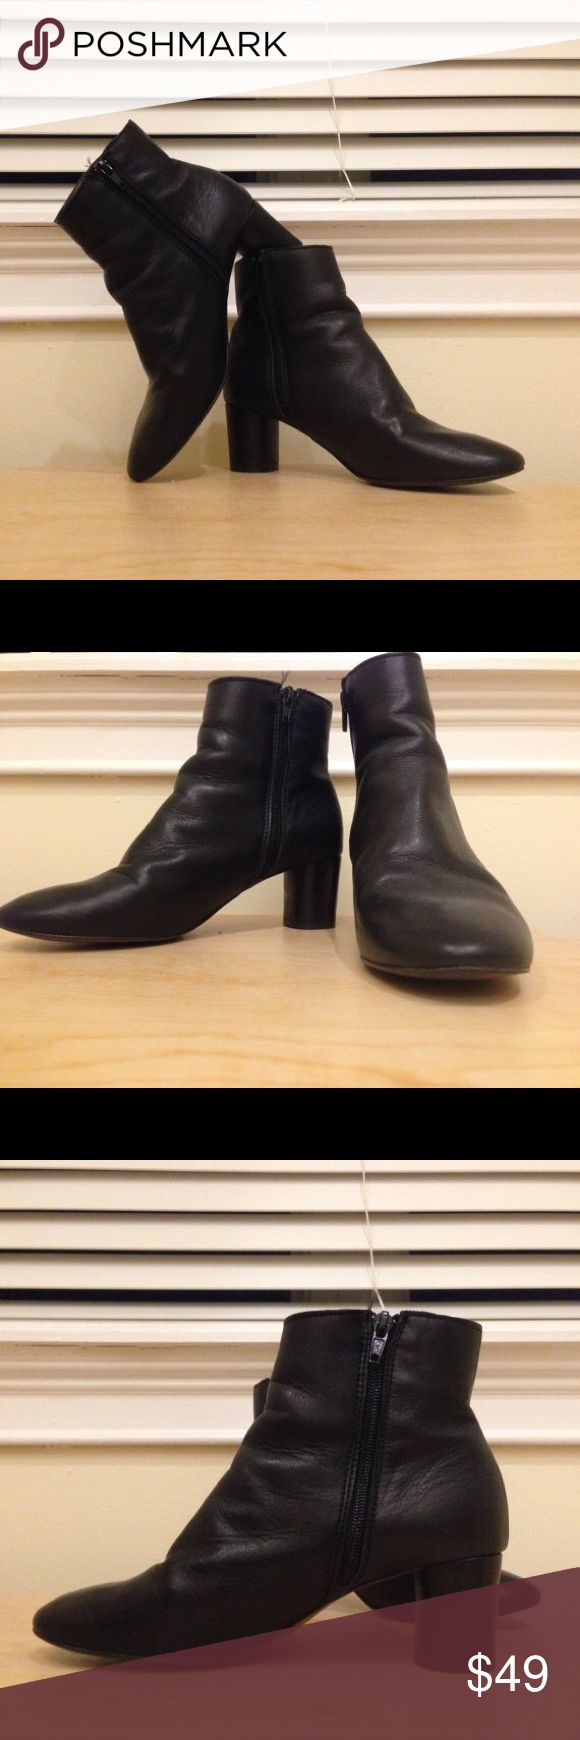 Topshop Boots, Size 6.5 These are ~literally the perfect boots, made by Topshop (!!). Soft, supple, 100% leather interior/exterior... comfortable heel height... and a truly classic look. Size US 6.5. Great condition. Worn only a few times -- the proof is in the sole -- and stored away since then. Just one 1 cm scuff on the left shoe, possibly not detectable in photos, as it is so small. I paid 3x what I'm selling these babies for (they are Topshop, after all). For $49, a real steal. Topshop…